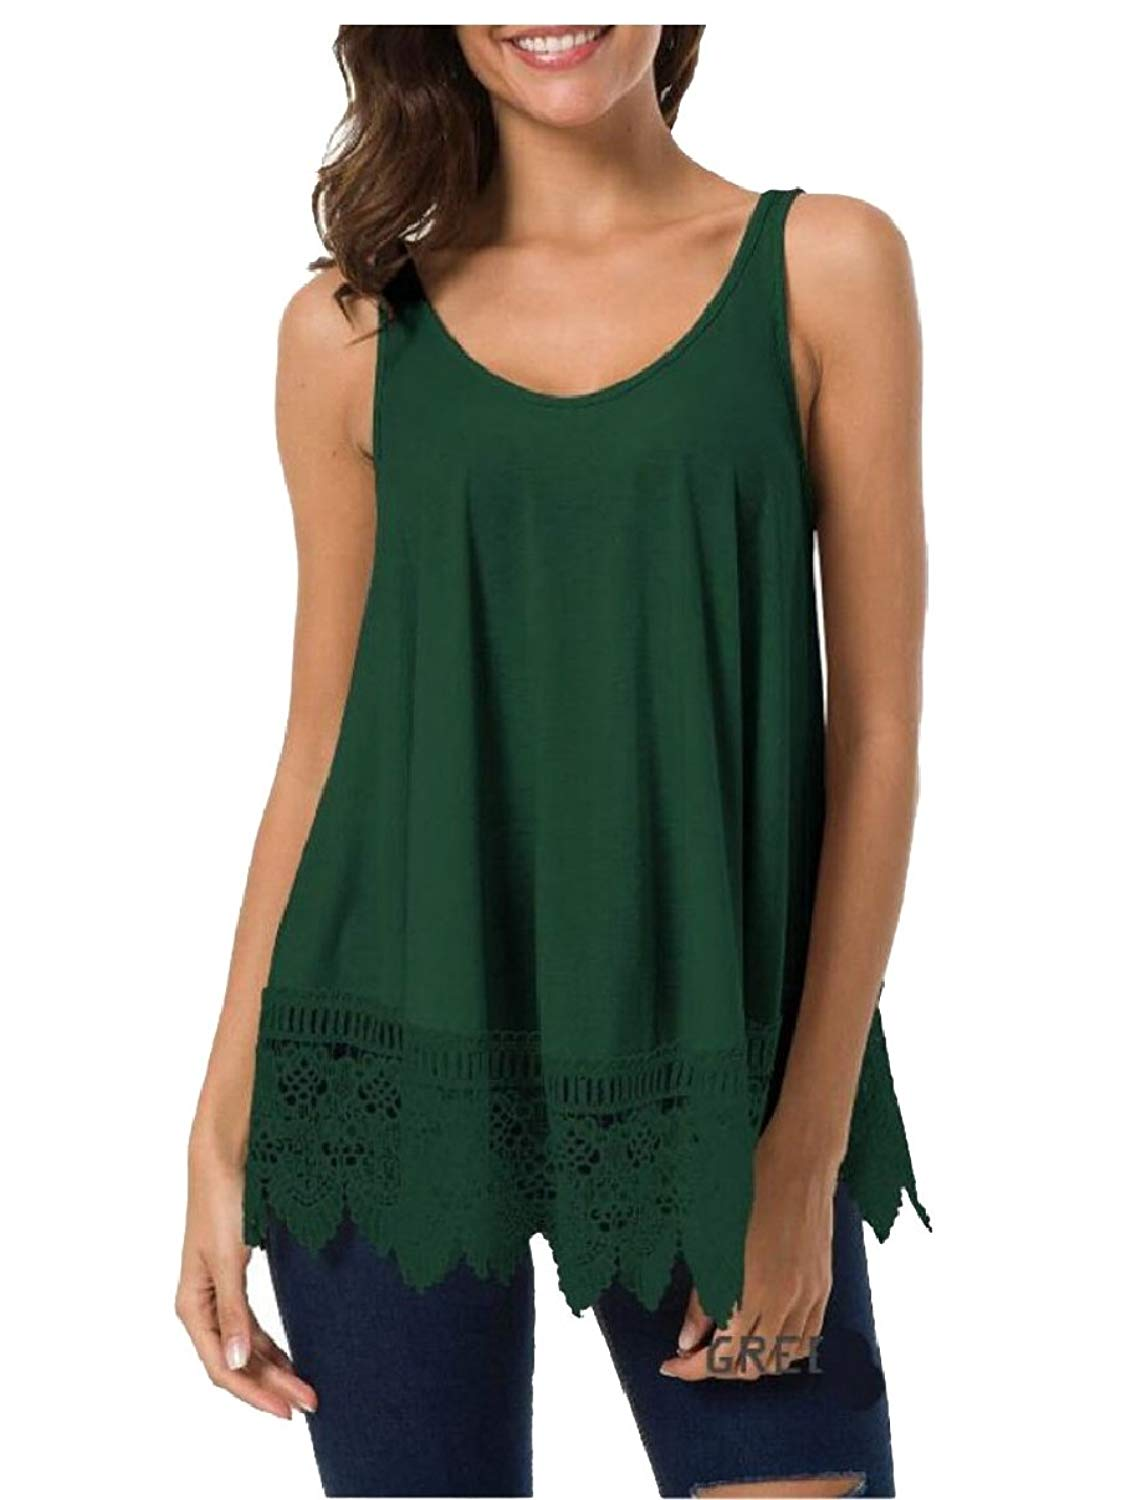 M/&S/&W Womens Loose Casual Summer Pleated Flowy Sleeveless Camisole Tank Tops